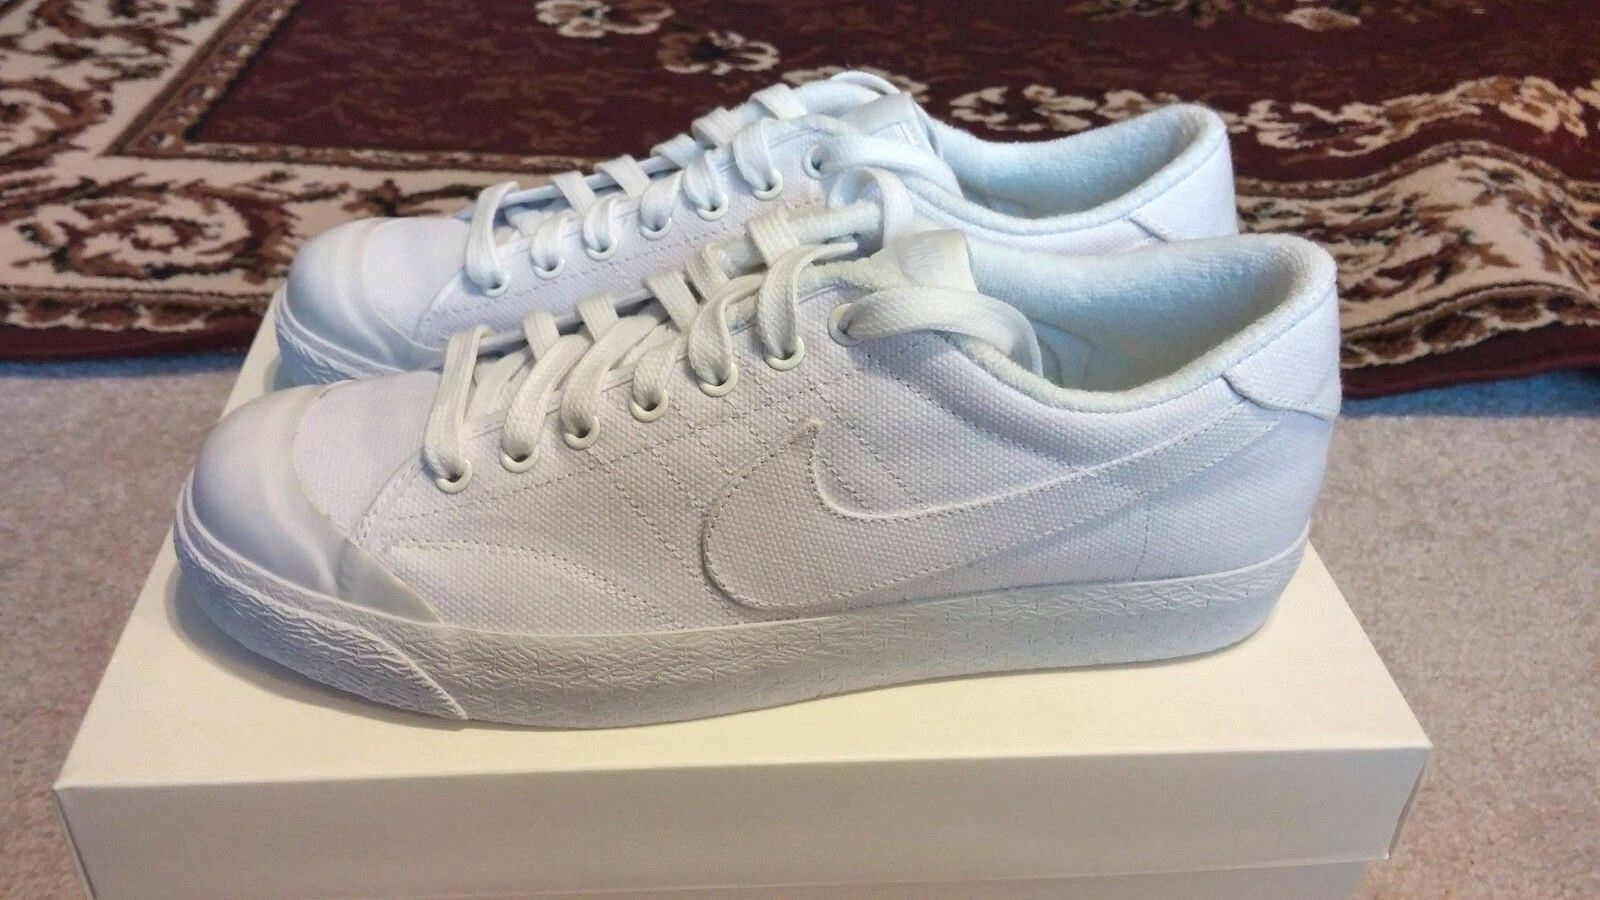 Nike X A.P.C. All Court Low Men's Sz 8.5 Collaboration APC DS KITH Rare Kanye The most popular shoes for men and women